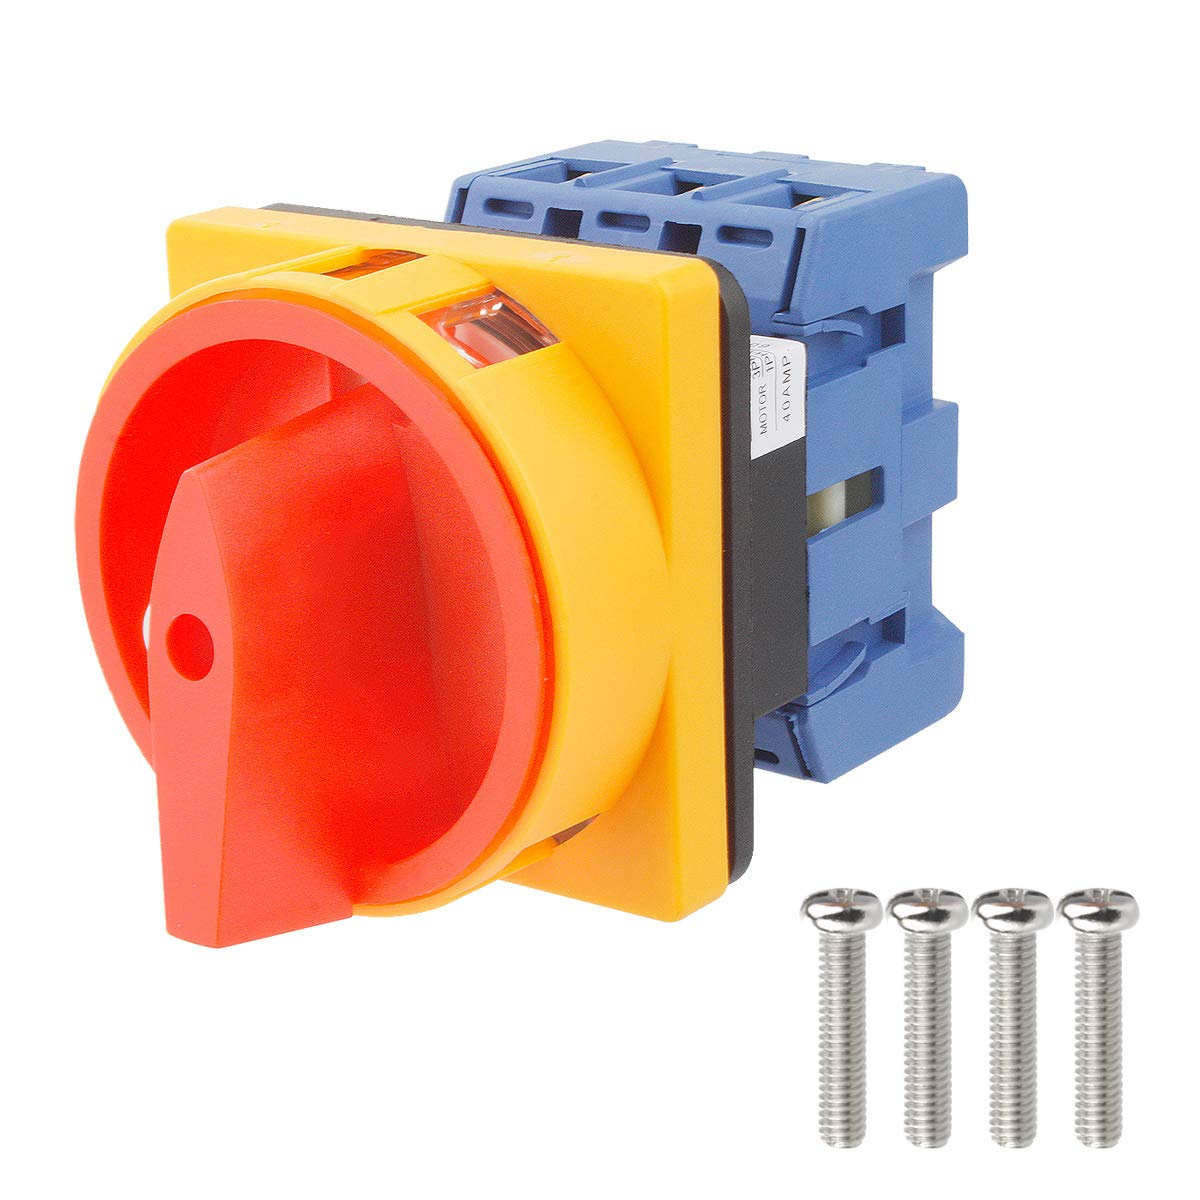 Electrical Buddy Universal Switch 2 Position 3 Phase Panel Rotary Selector Changeover Switch GLD11 40A AC 690V 40A